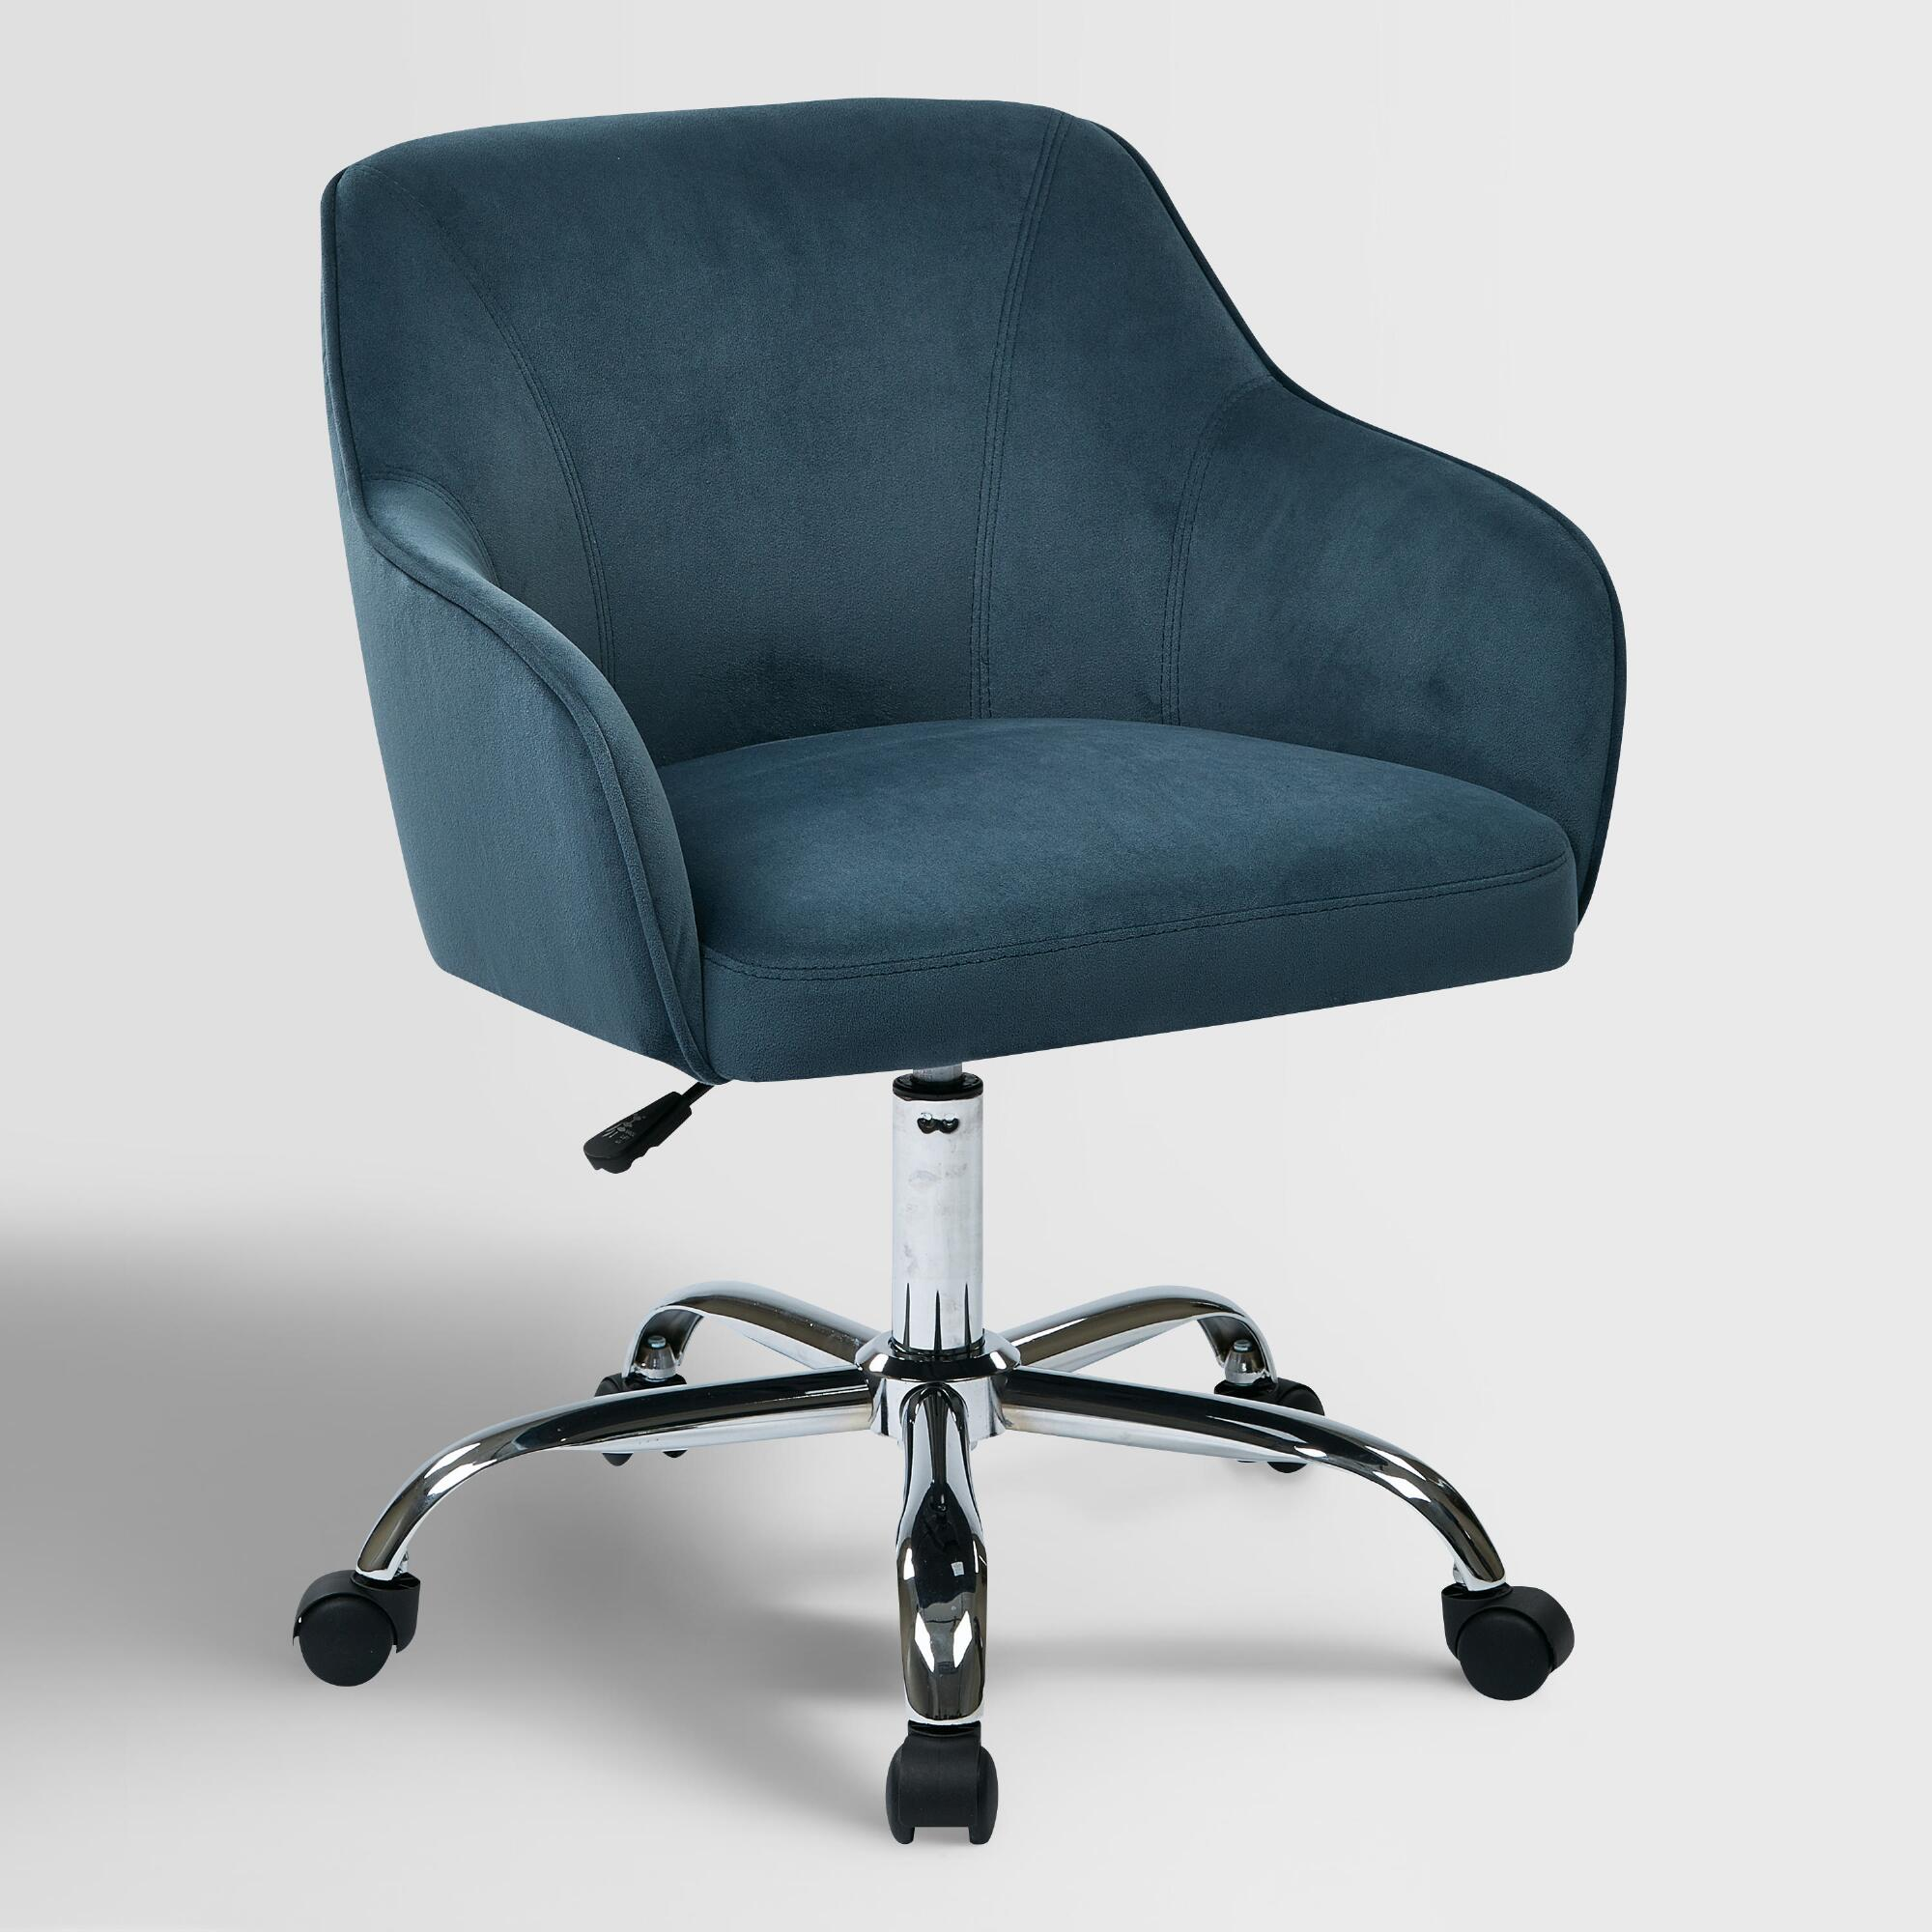 ergonomic task red desk high detail products gaming back style mountain executive blue inc racing chair swivel cloud